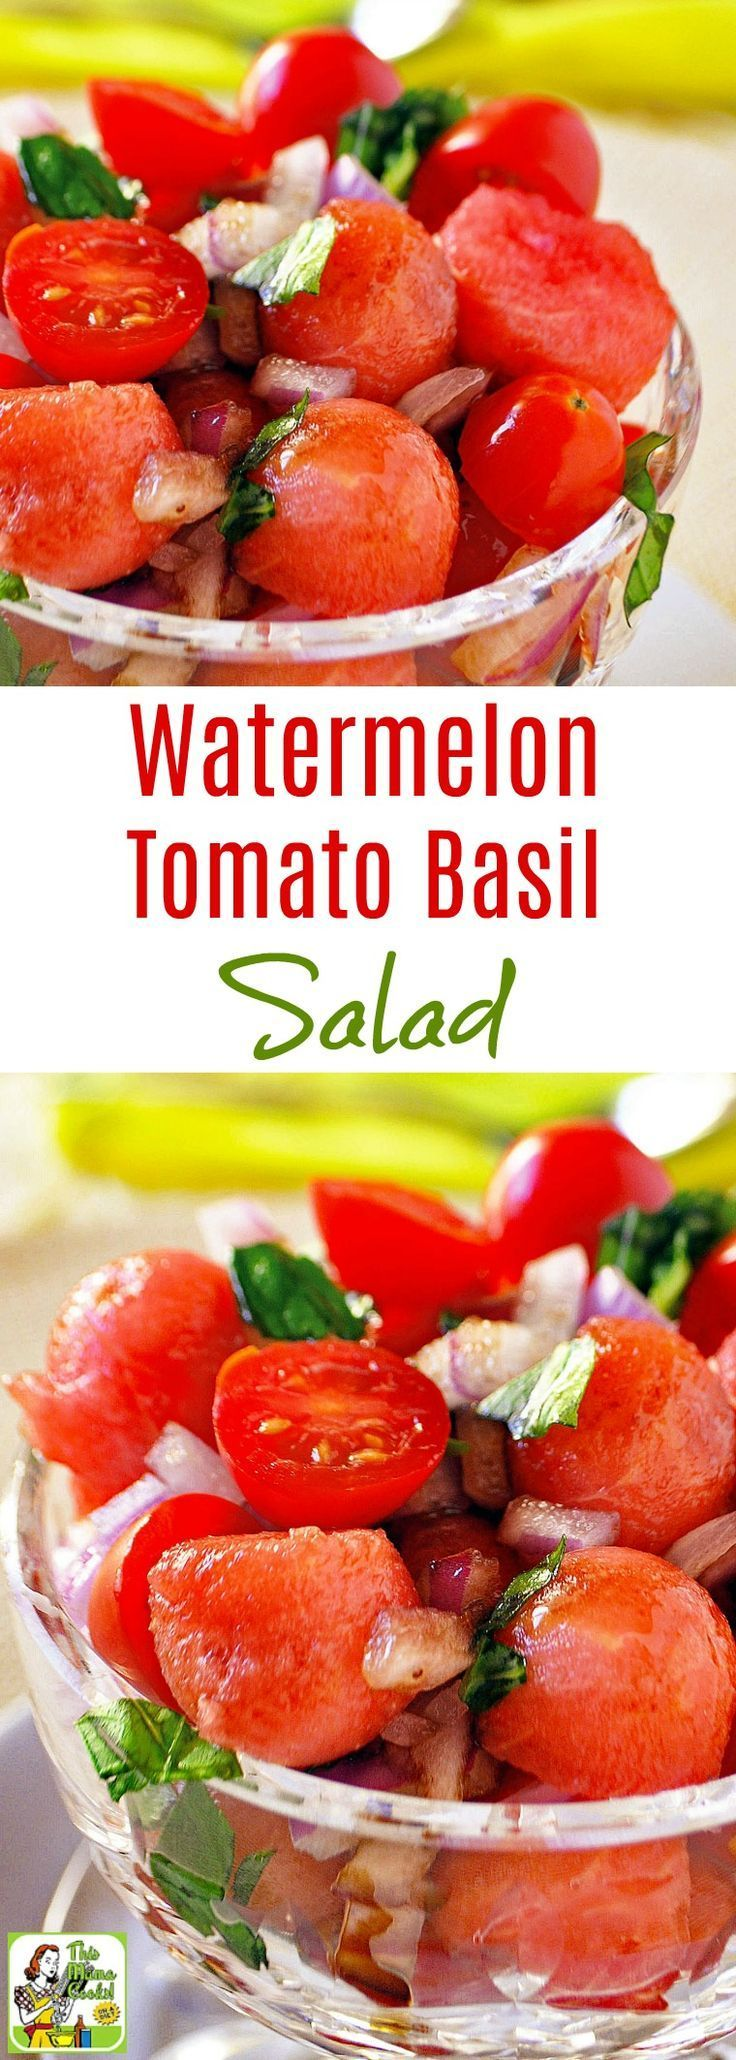 This Easy Watermelon Tomato Basil Salad recipe is ideal for summer cookouts or potlucks. Click to get this tomato basil salad recipe flavored with onions and balsamic vinegar is naturally gluten free. This easy to make watermelon and tomato salad is also